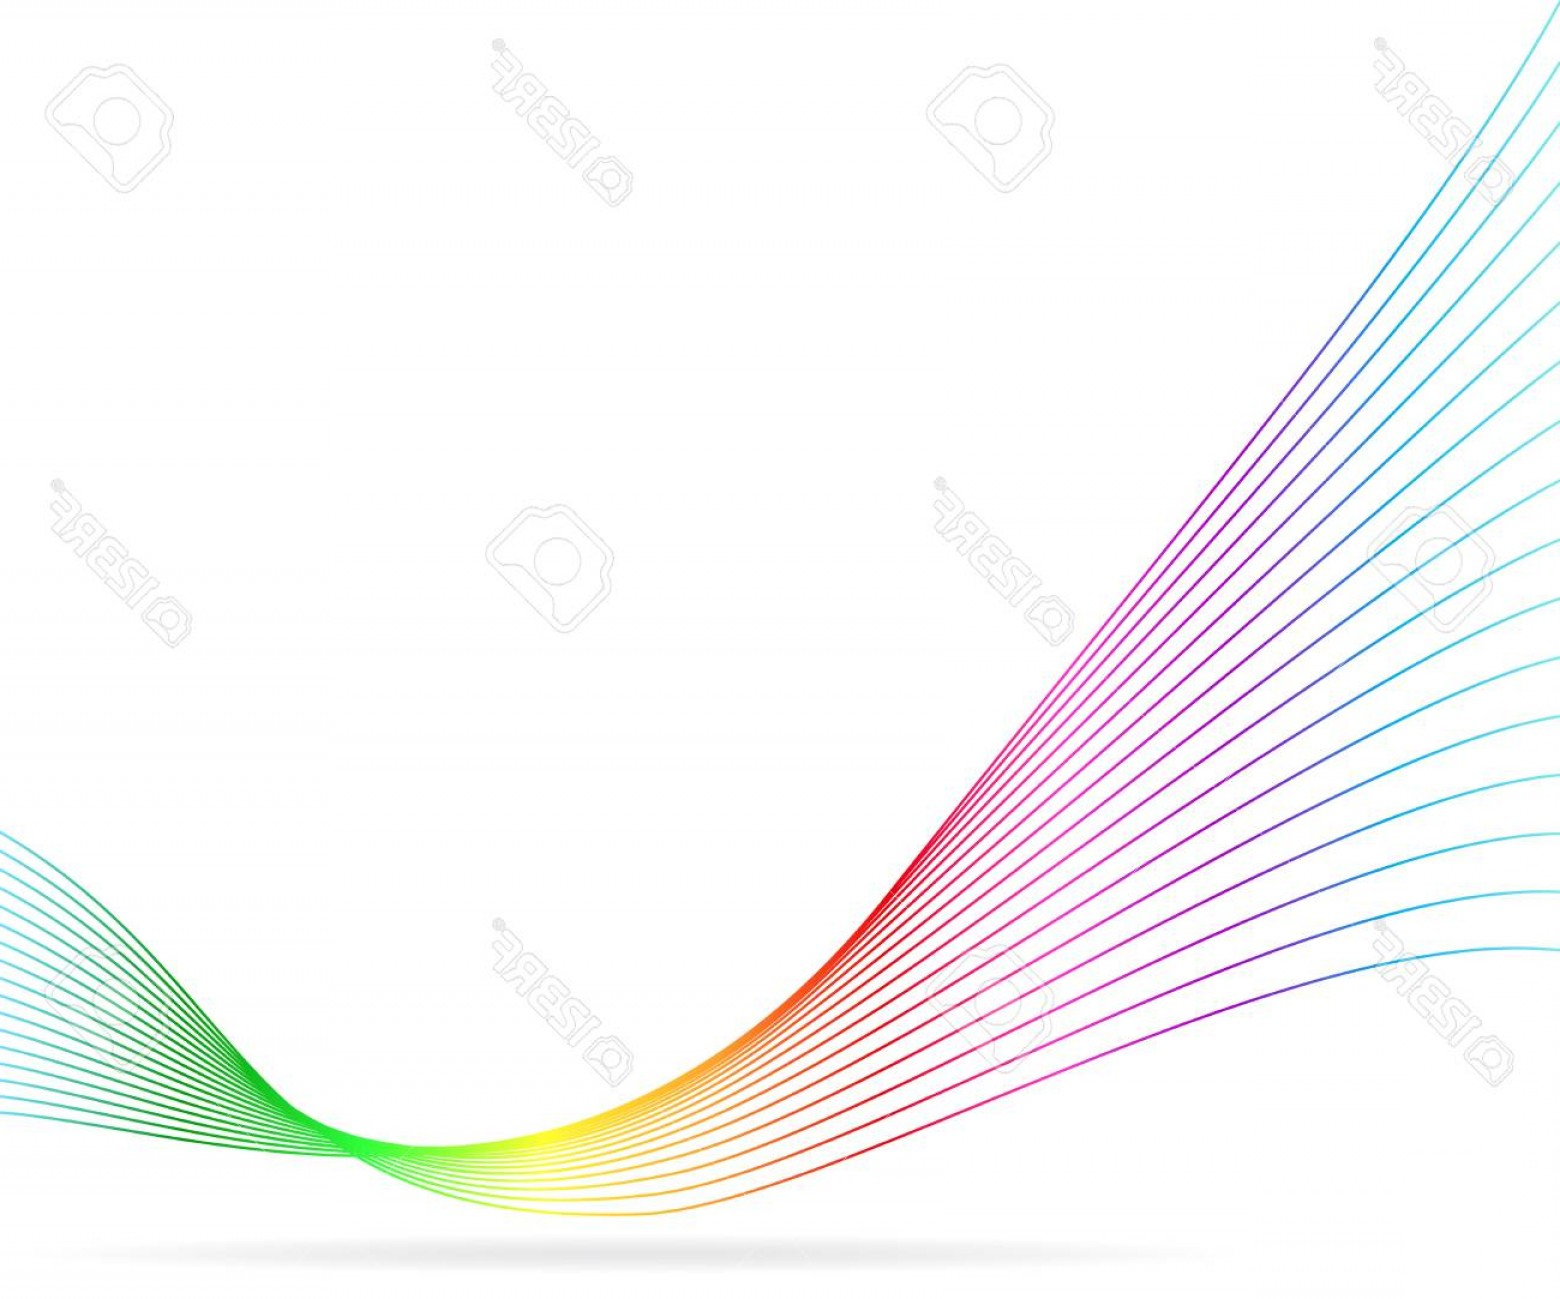 Wavy Line Illustrator Vector: Photostock Vector Abstract Colorful Vector Background Wavy Lines Illustration